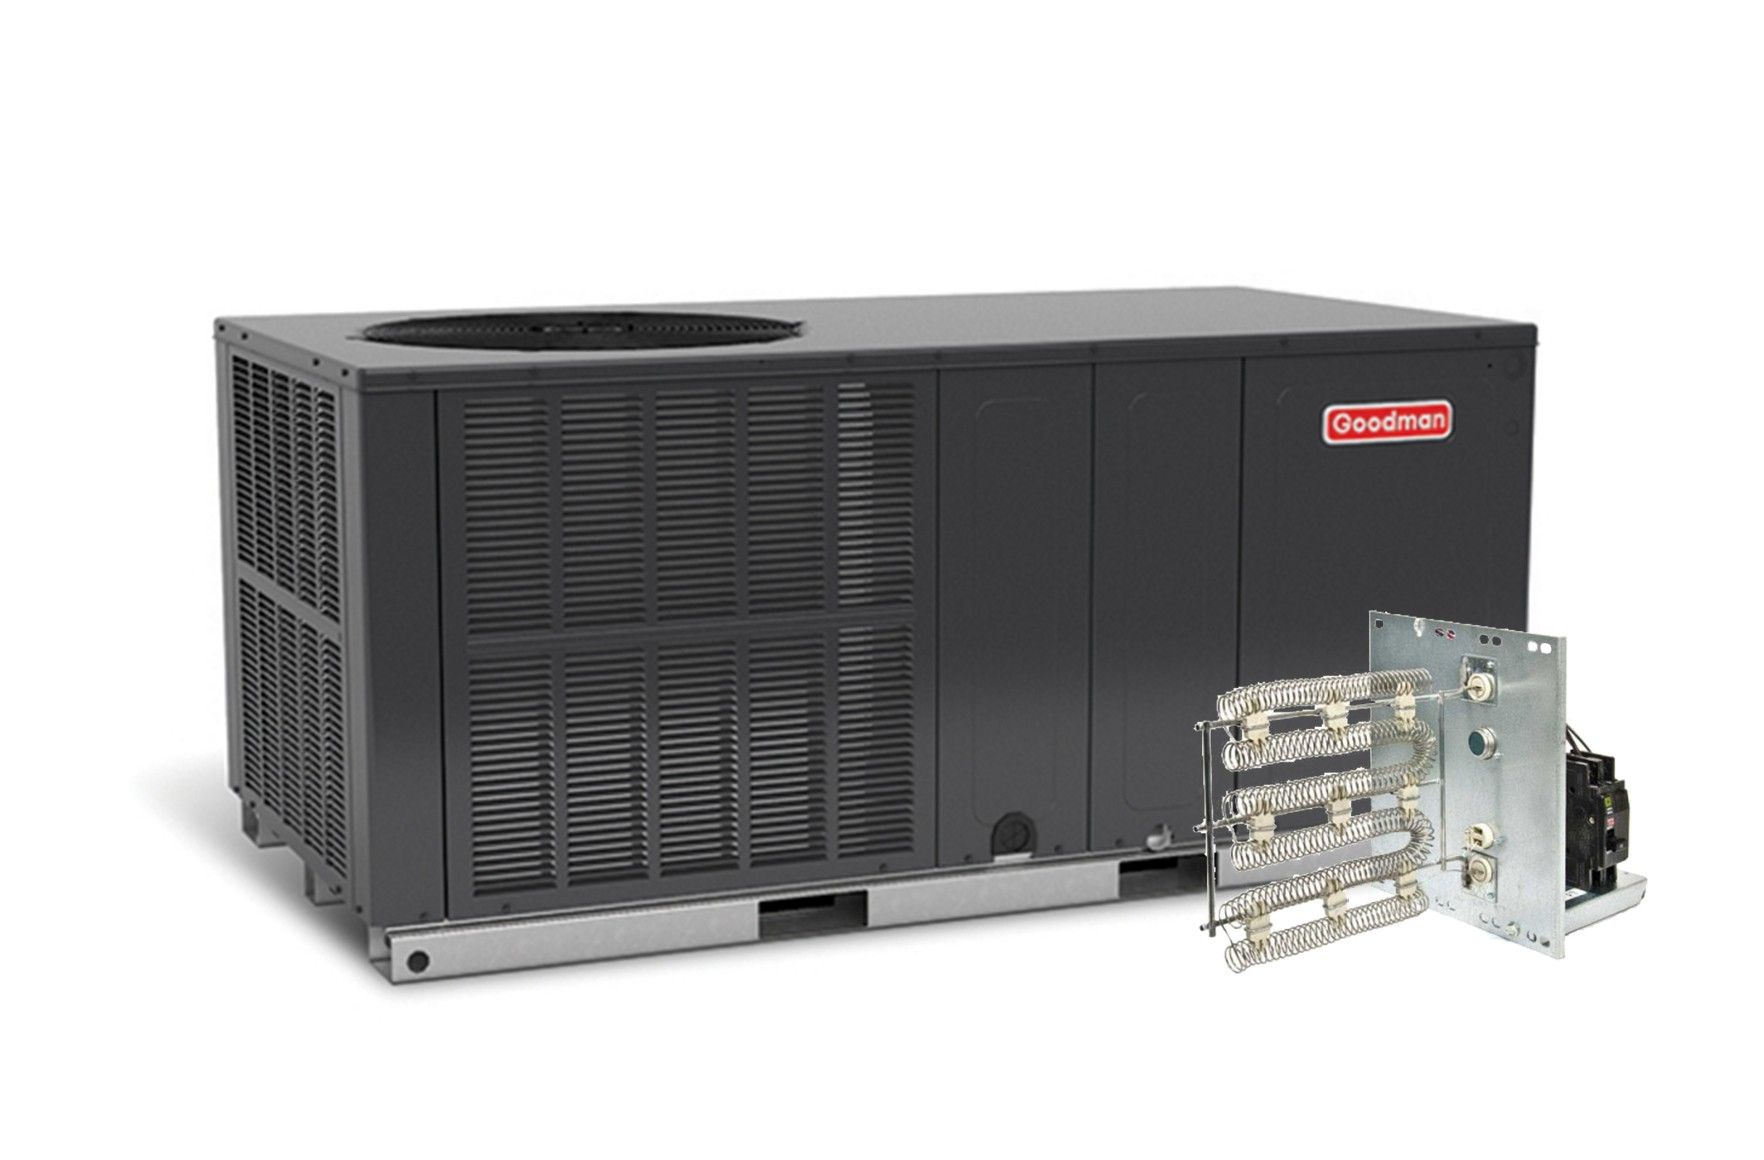 Goodman 3.5 Ton 16 SEER Single Stage Heat Pump Package Unit